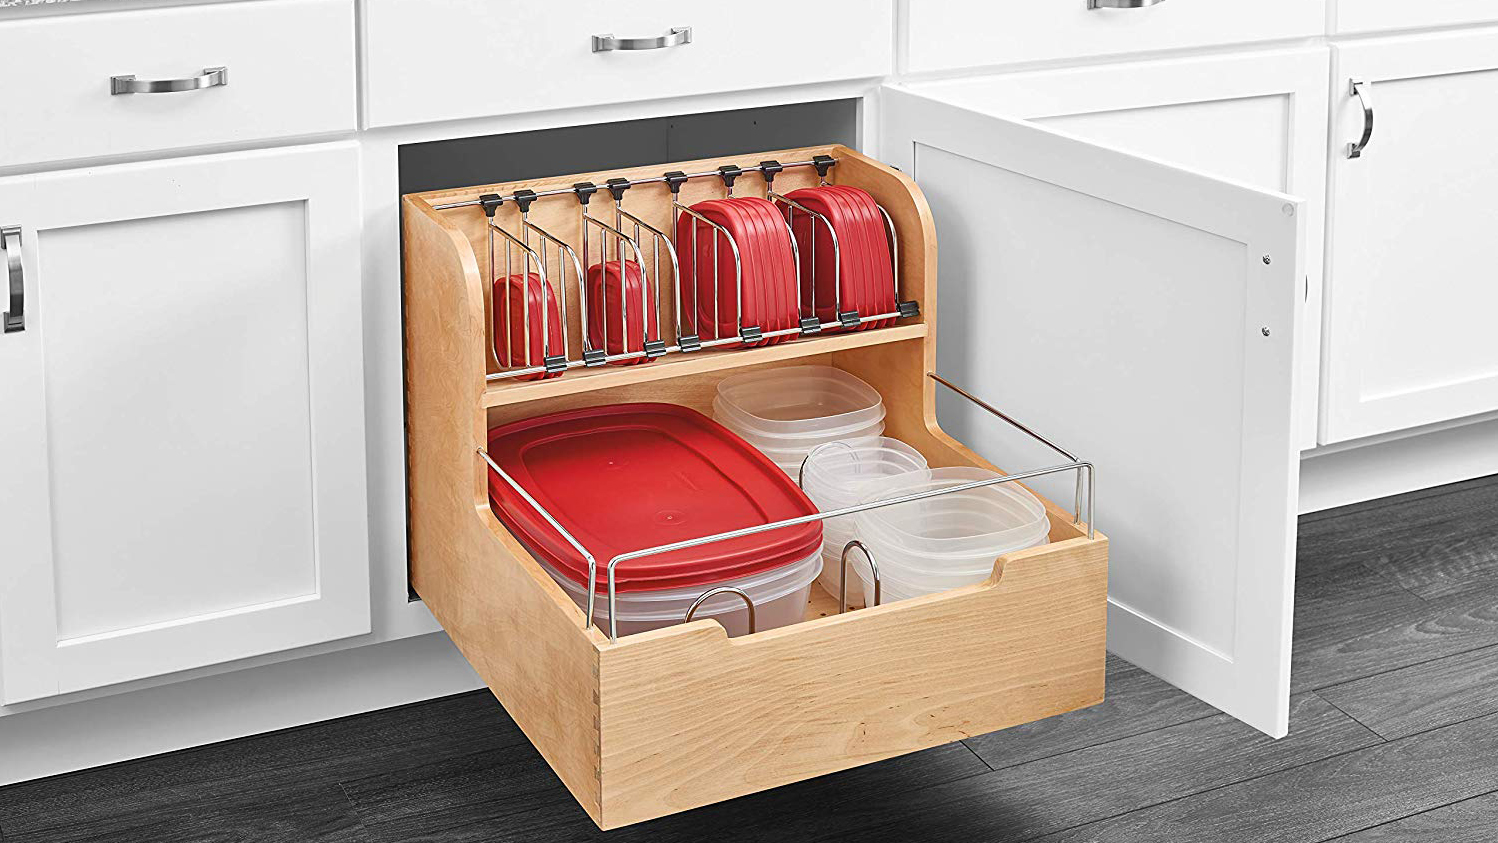 Never Lose Your Lids Again With This Genius Tupperware Organizer - Woman's World